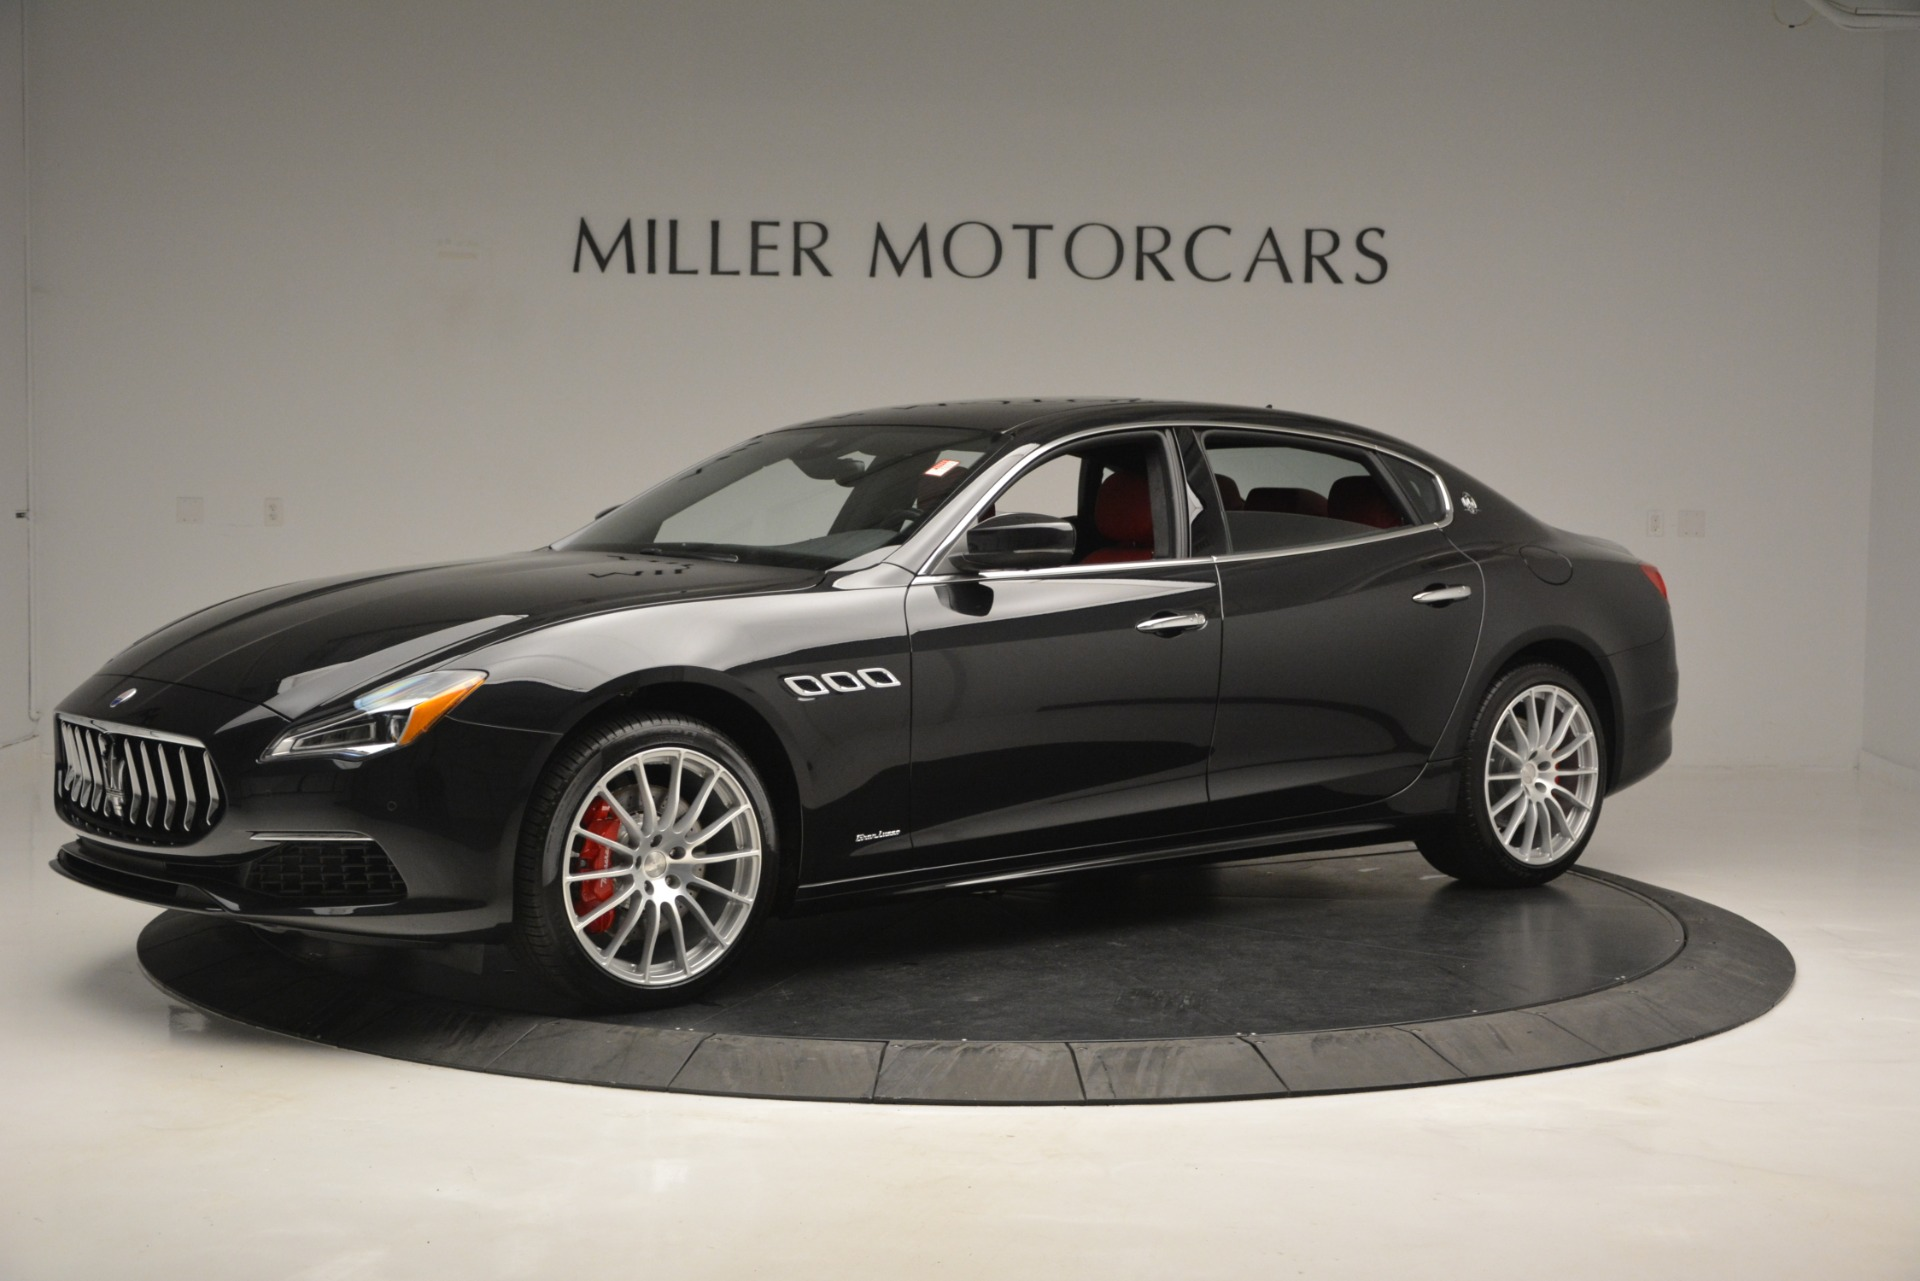 New 2019 Maserati Quattroporte S Q4 GranLusso For Sale In Greenwich, CT. Alfa Romeo of Greenwich, W629 2718_p2